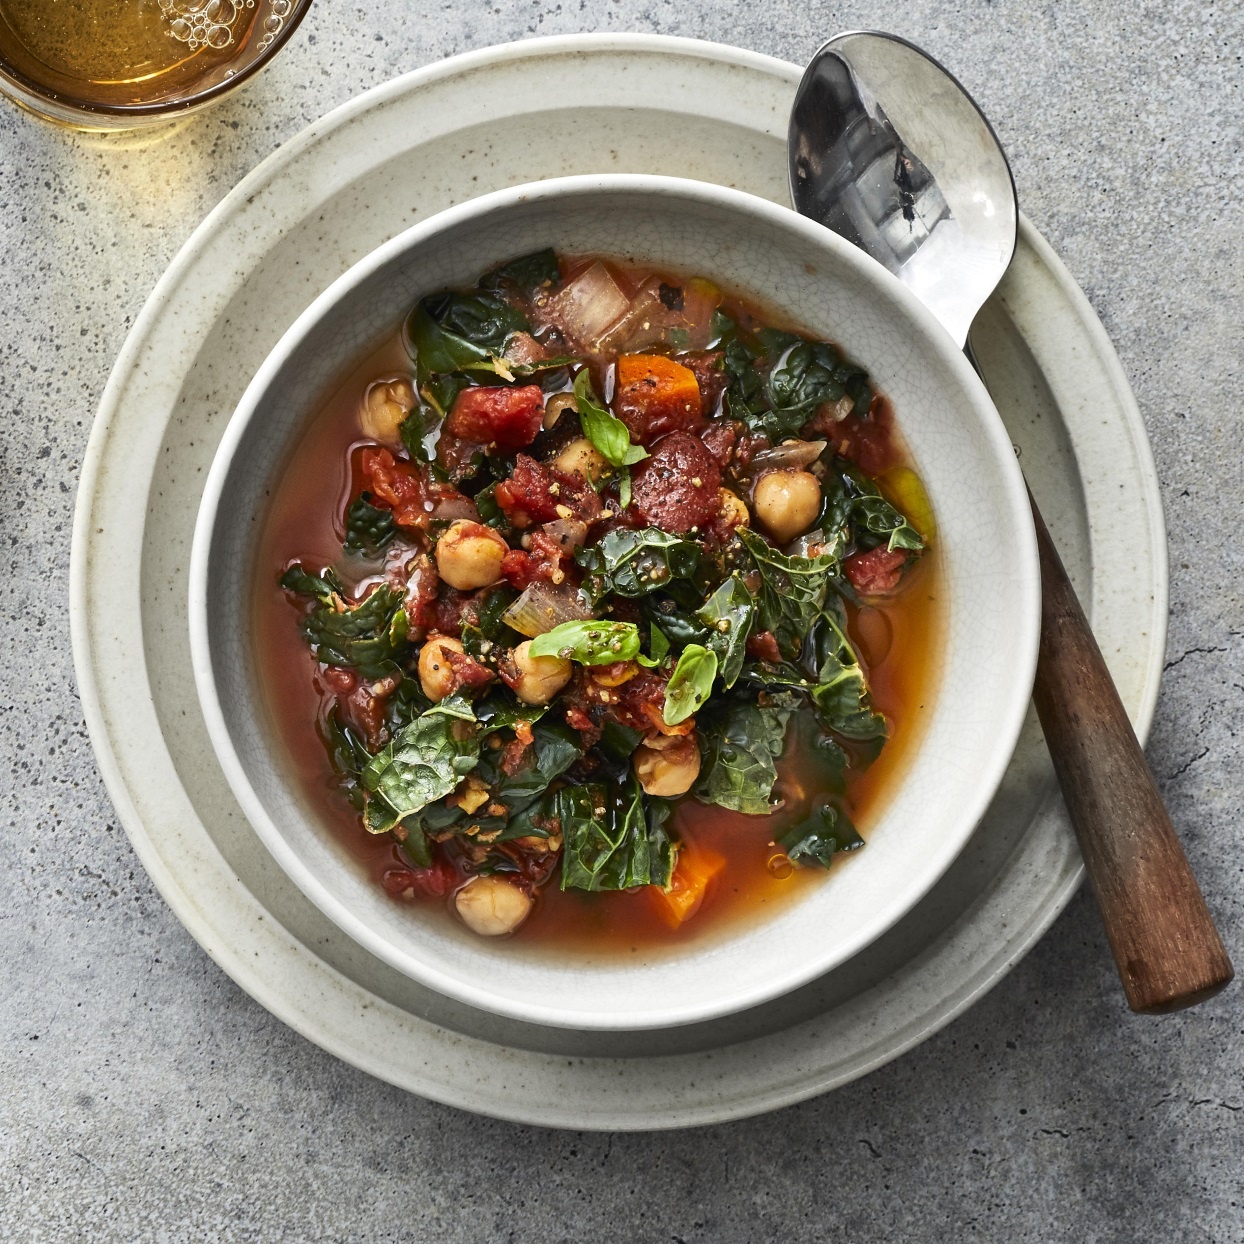 This Mediterranean stew is a healthy dinner chock-full of vegetables and hearty chickpeas. A drizzle of olive oil to finish carries the flavors of this easy vegan crock-pot stew. Swap out the chickpeas for white beans for a different twist, or try collards or spinach in place of the kale. Any way you vary it, this stew is sure to go into heavy rotation when you are looking for healthy crock-pot recipes. Source: EatingWell.com, November 2019